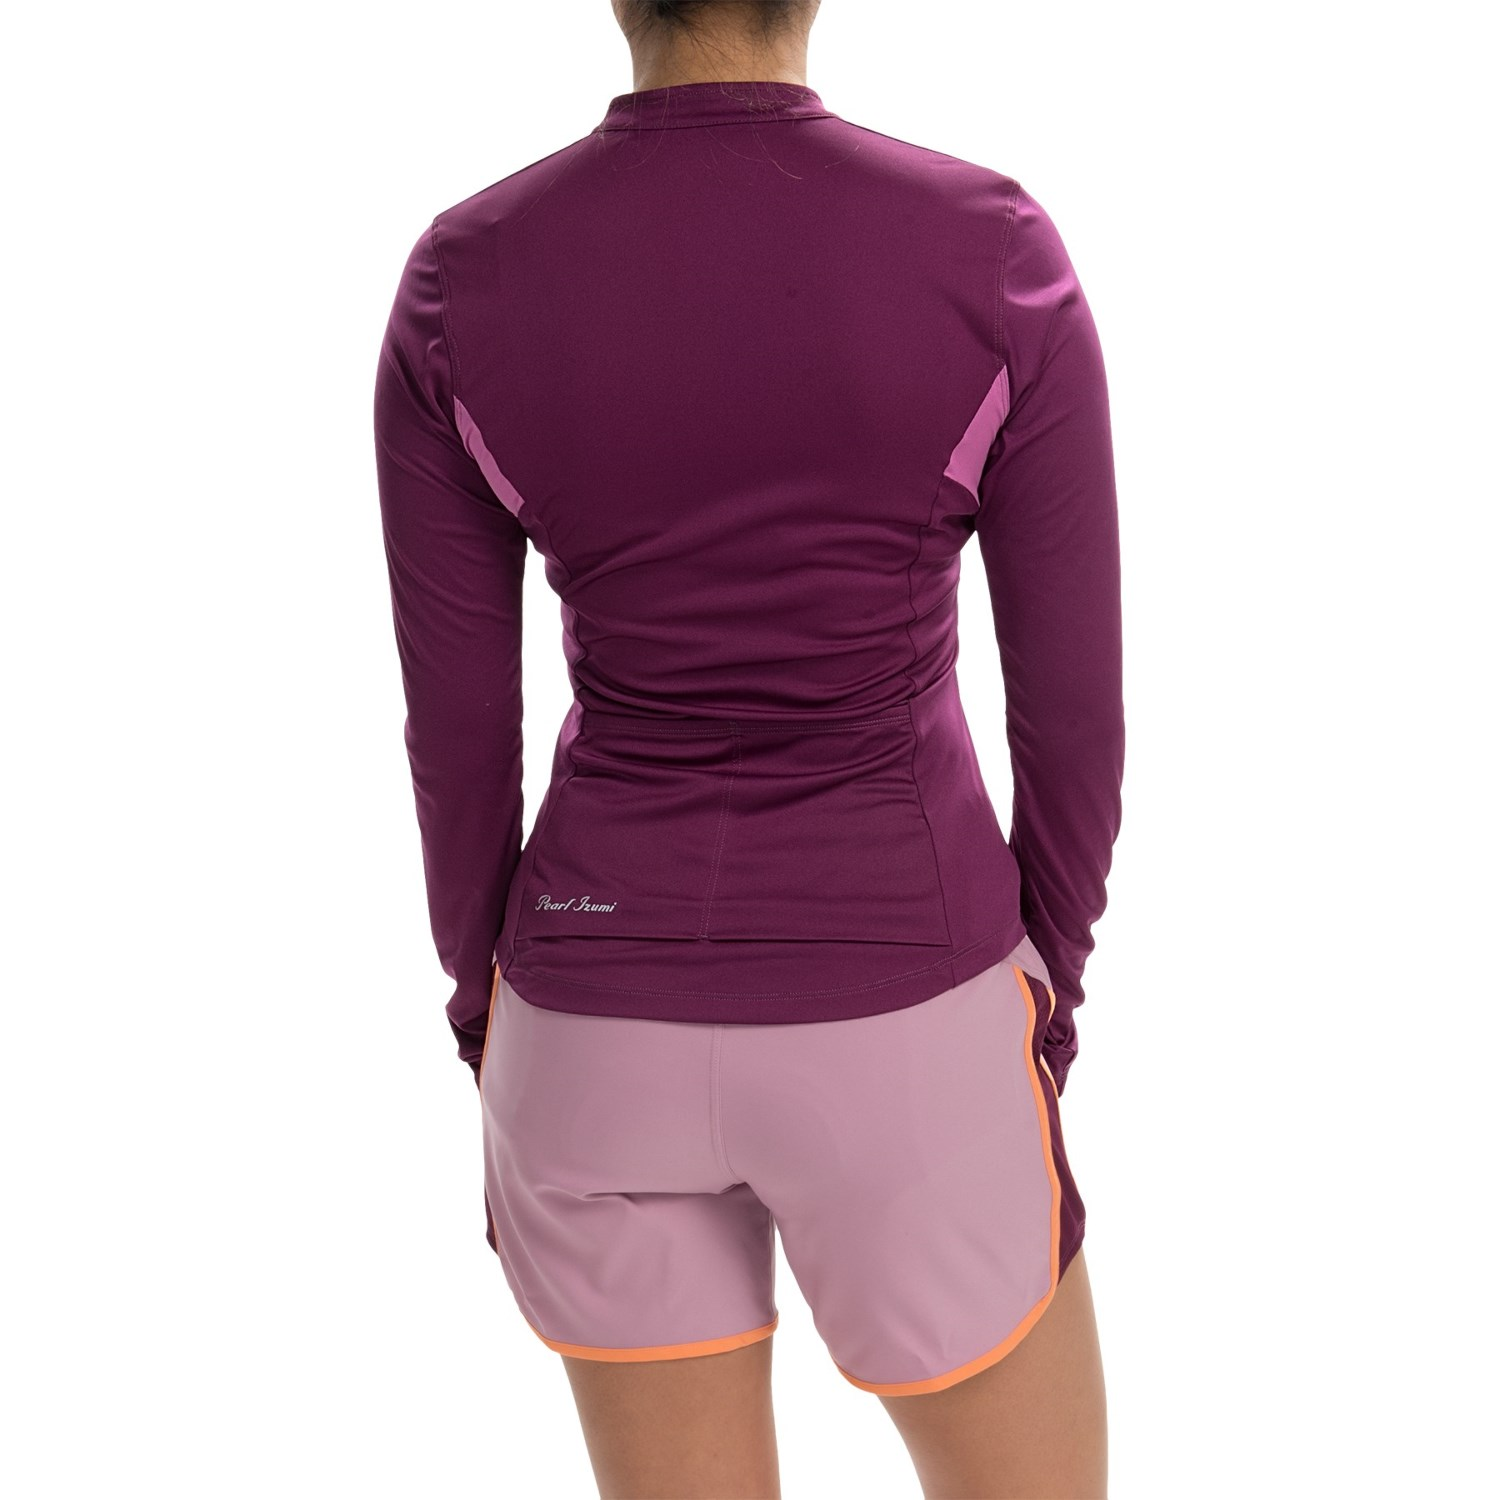 Pearl izumi select cycling jersey for women save 53 for Pearl izumi cycling shirt